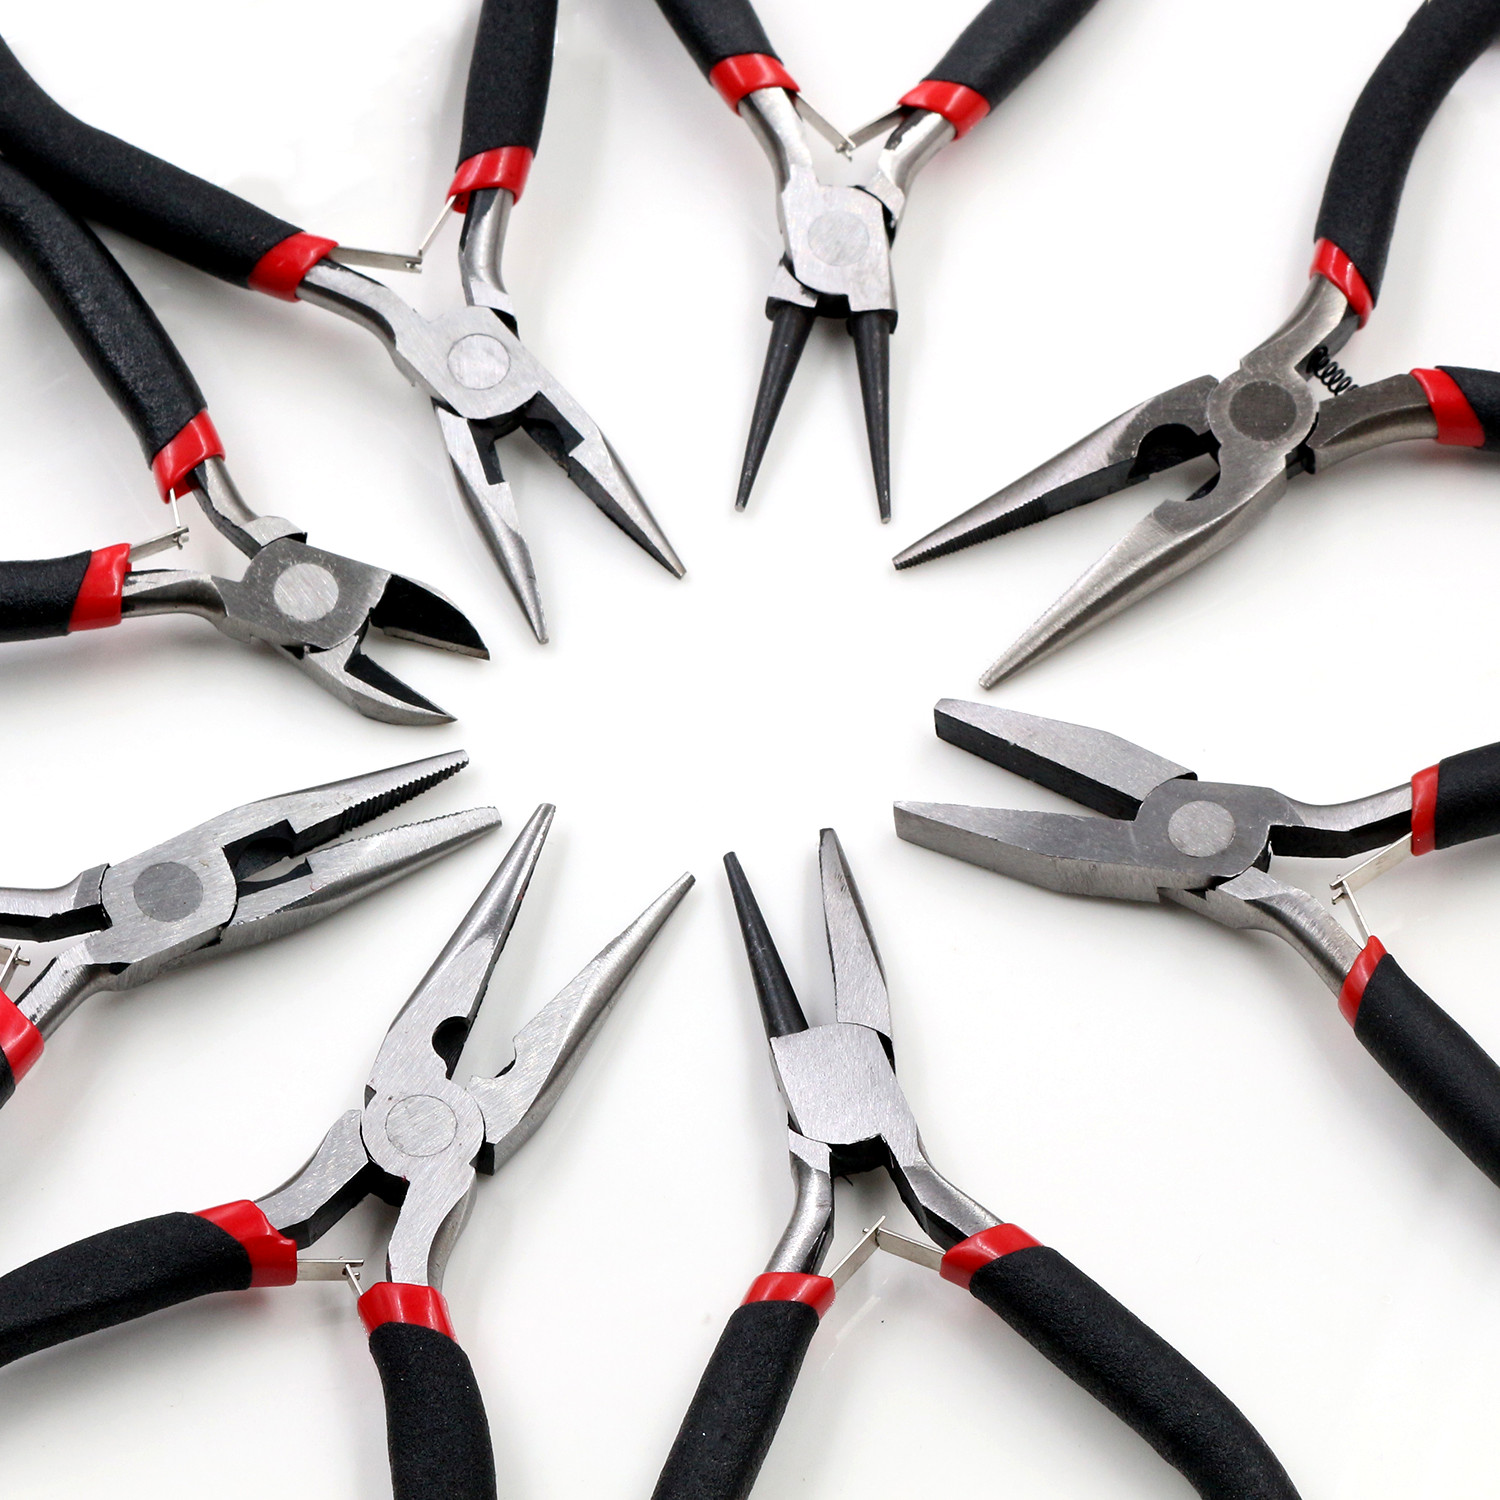 1 Piece Stainless Steel Needle Nose Pliers Jewelry Making Hand Tool Black 12.5cm|pliers jewelry|nose pliers|pliers jewelry making - AliExpress